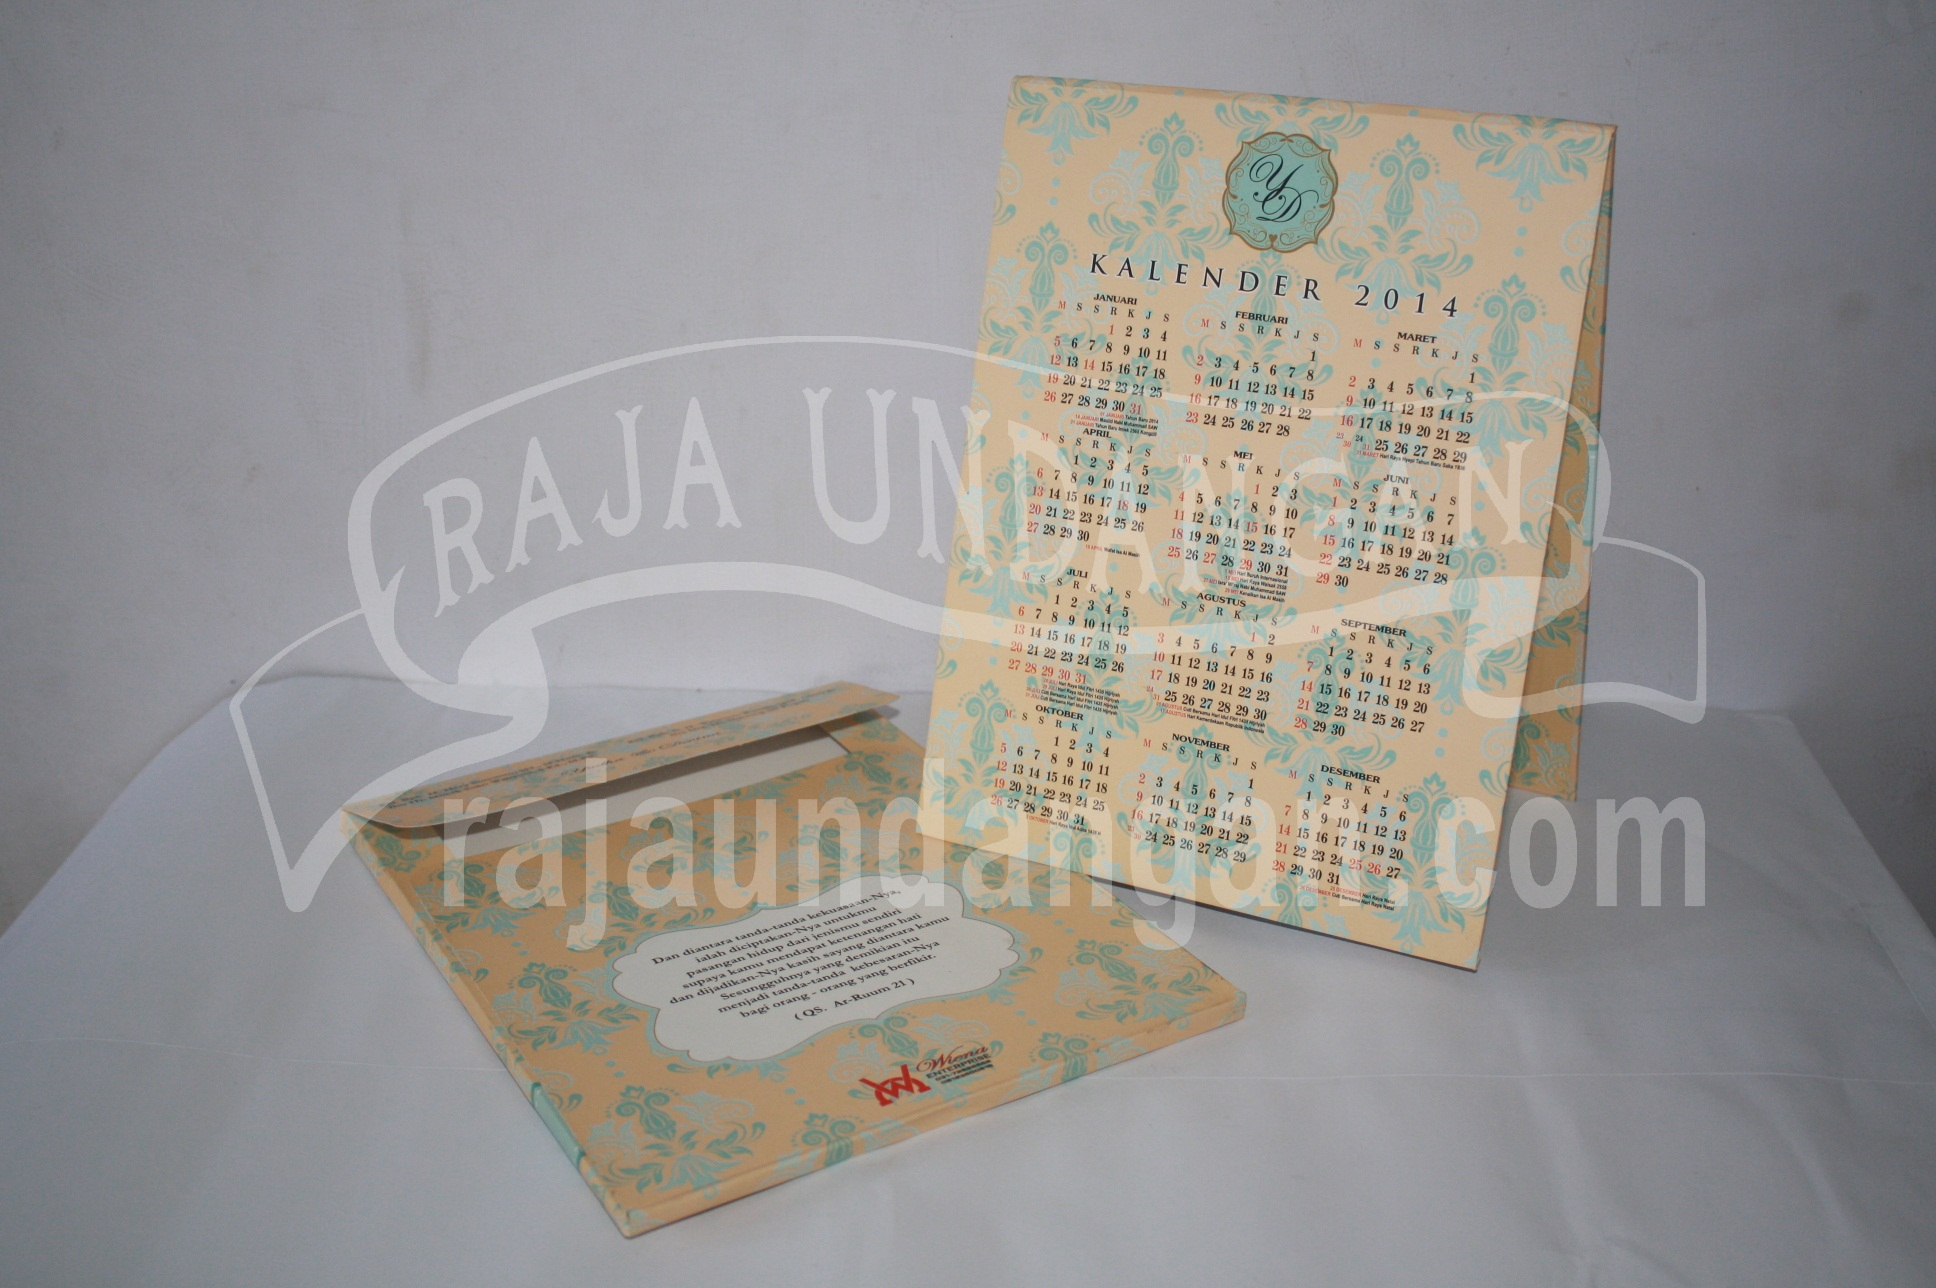 Undangan Pernikahan Hardcover Pop Up Pakai Amplop Yudha dan Devina EDC 47 51 - Percetakan Wedding Invitations Unik dan Simple di Dukuh Sutorejo